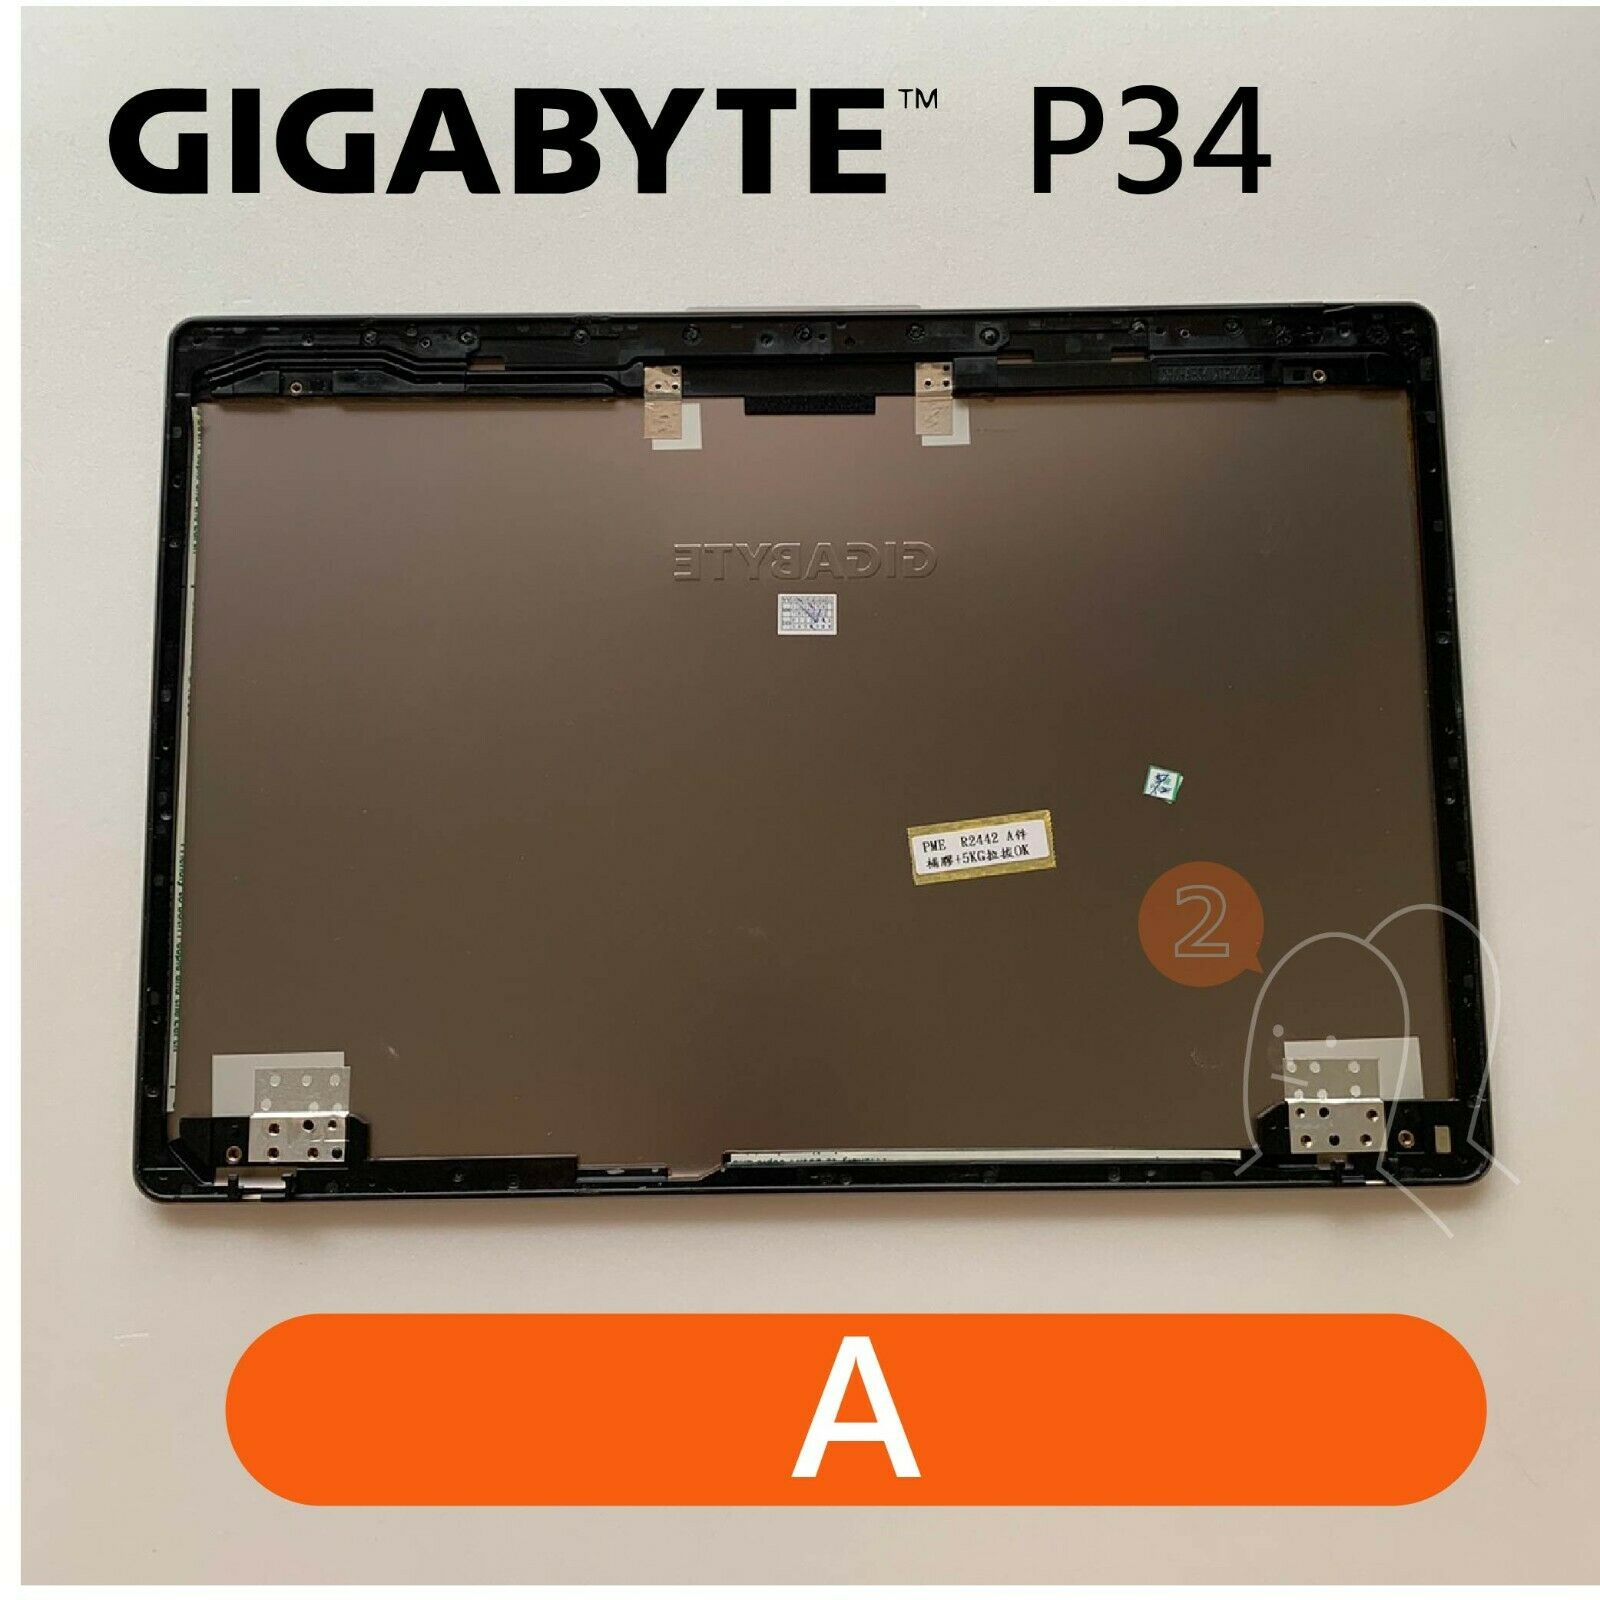 【2p3c】Replacement for GIGABYTE P34 Laptop LCD Cover : A(Rear Top Lid Back Cover)